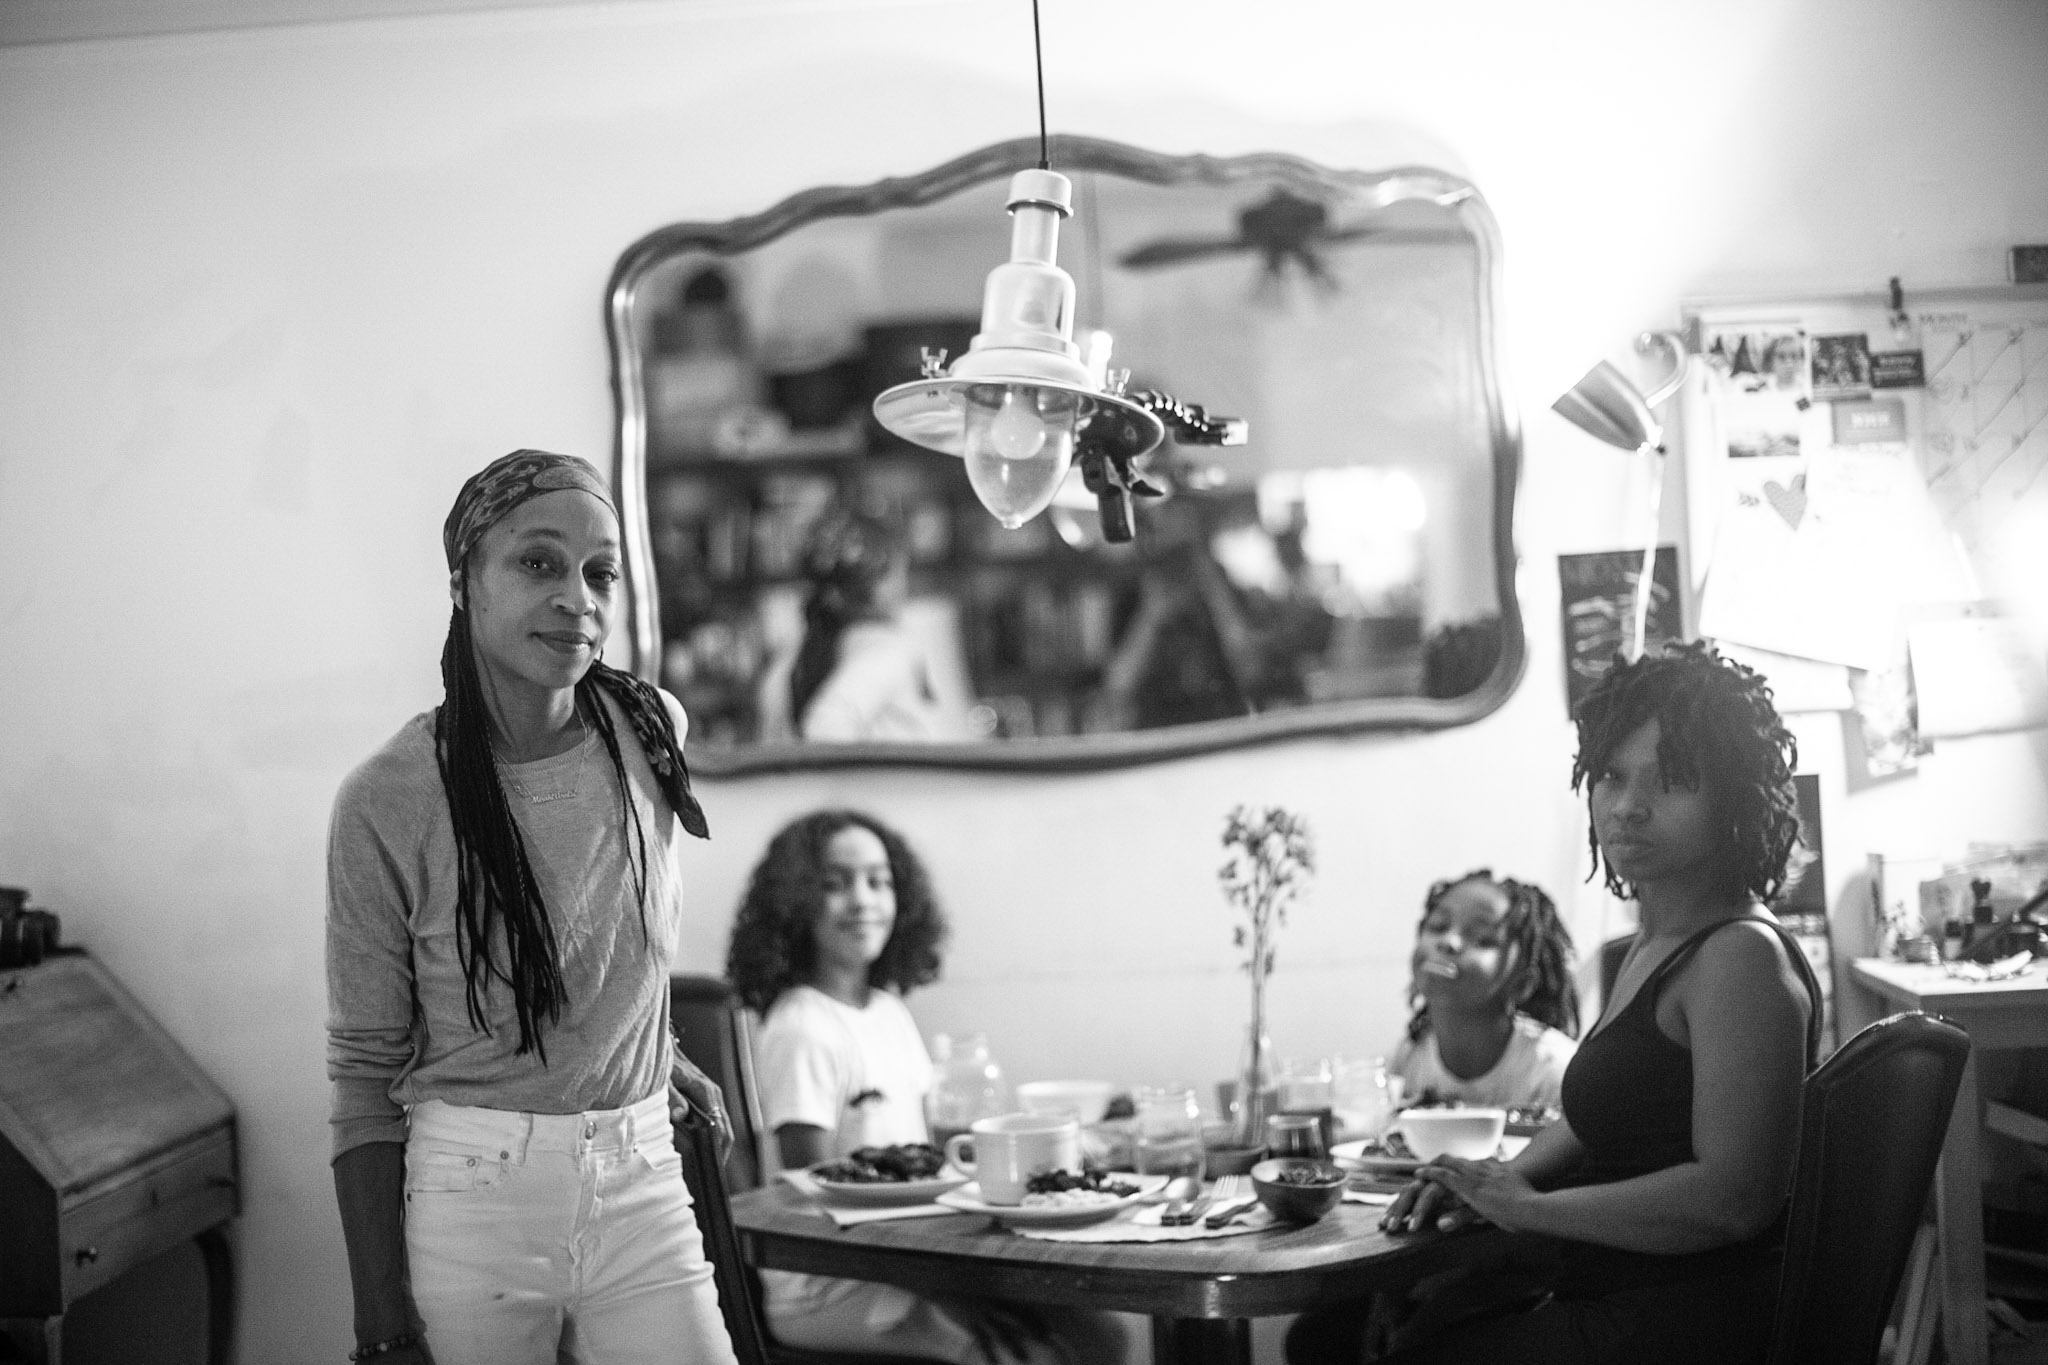 A black-and-white photograph of two women and two girls, all with medium-dark skin tones, together at a dining table set for dinner. A lamp hangs over the table and a mirror hangs on a wall behind them. The woman on the left is standing, while the other three sit at the table.